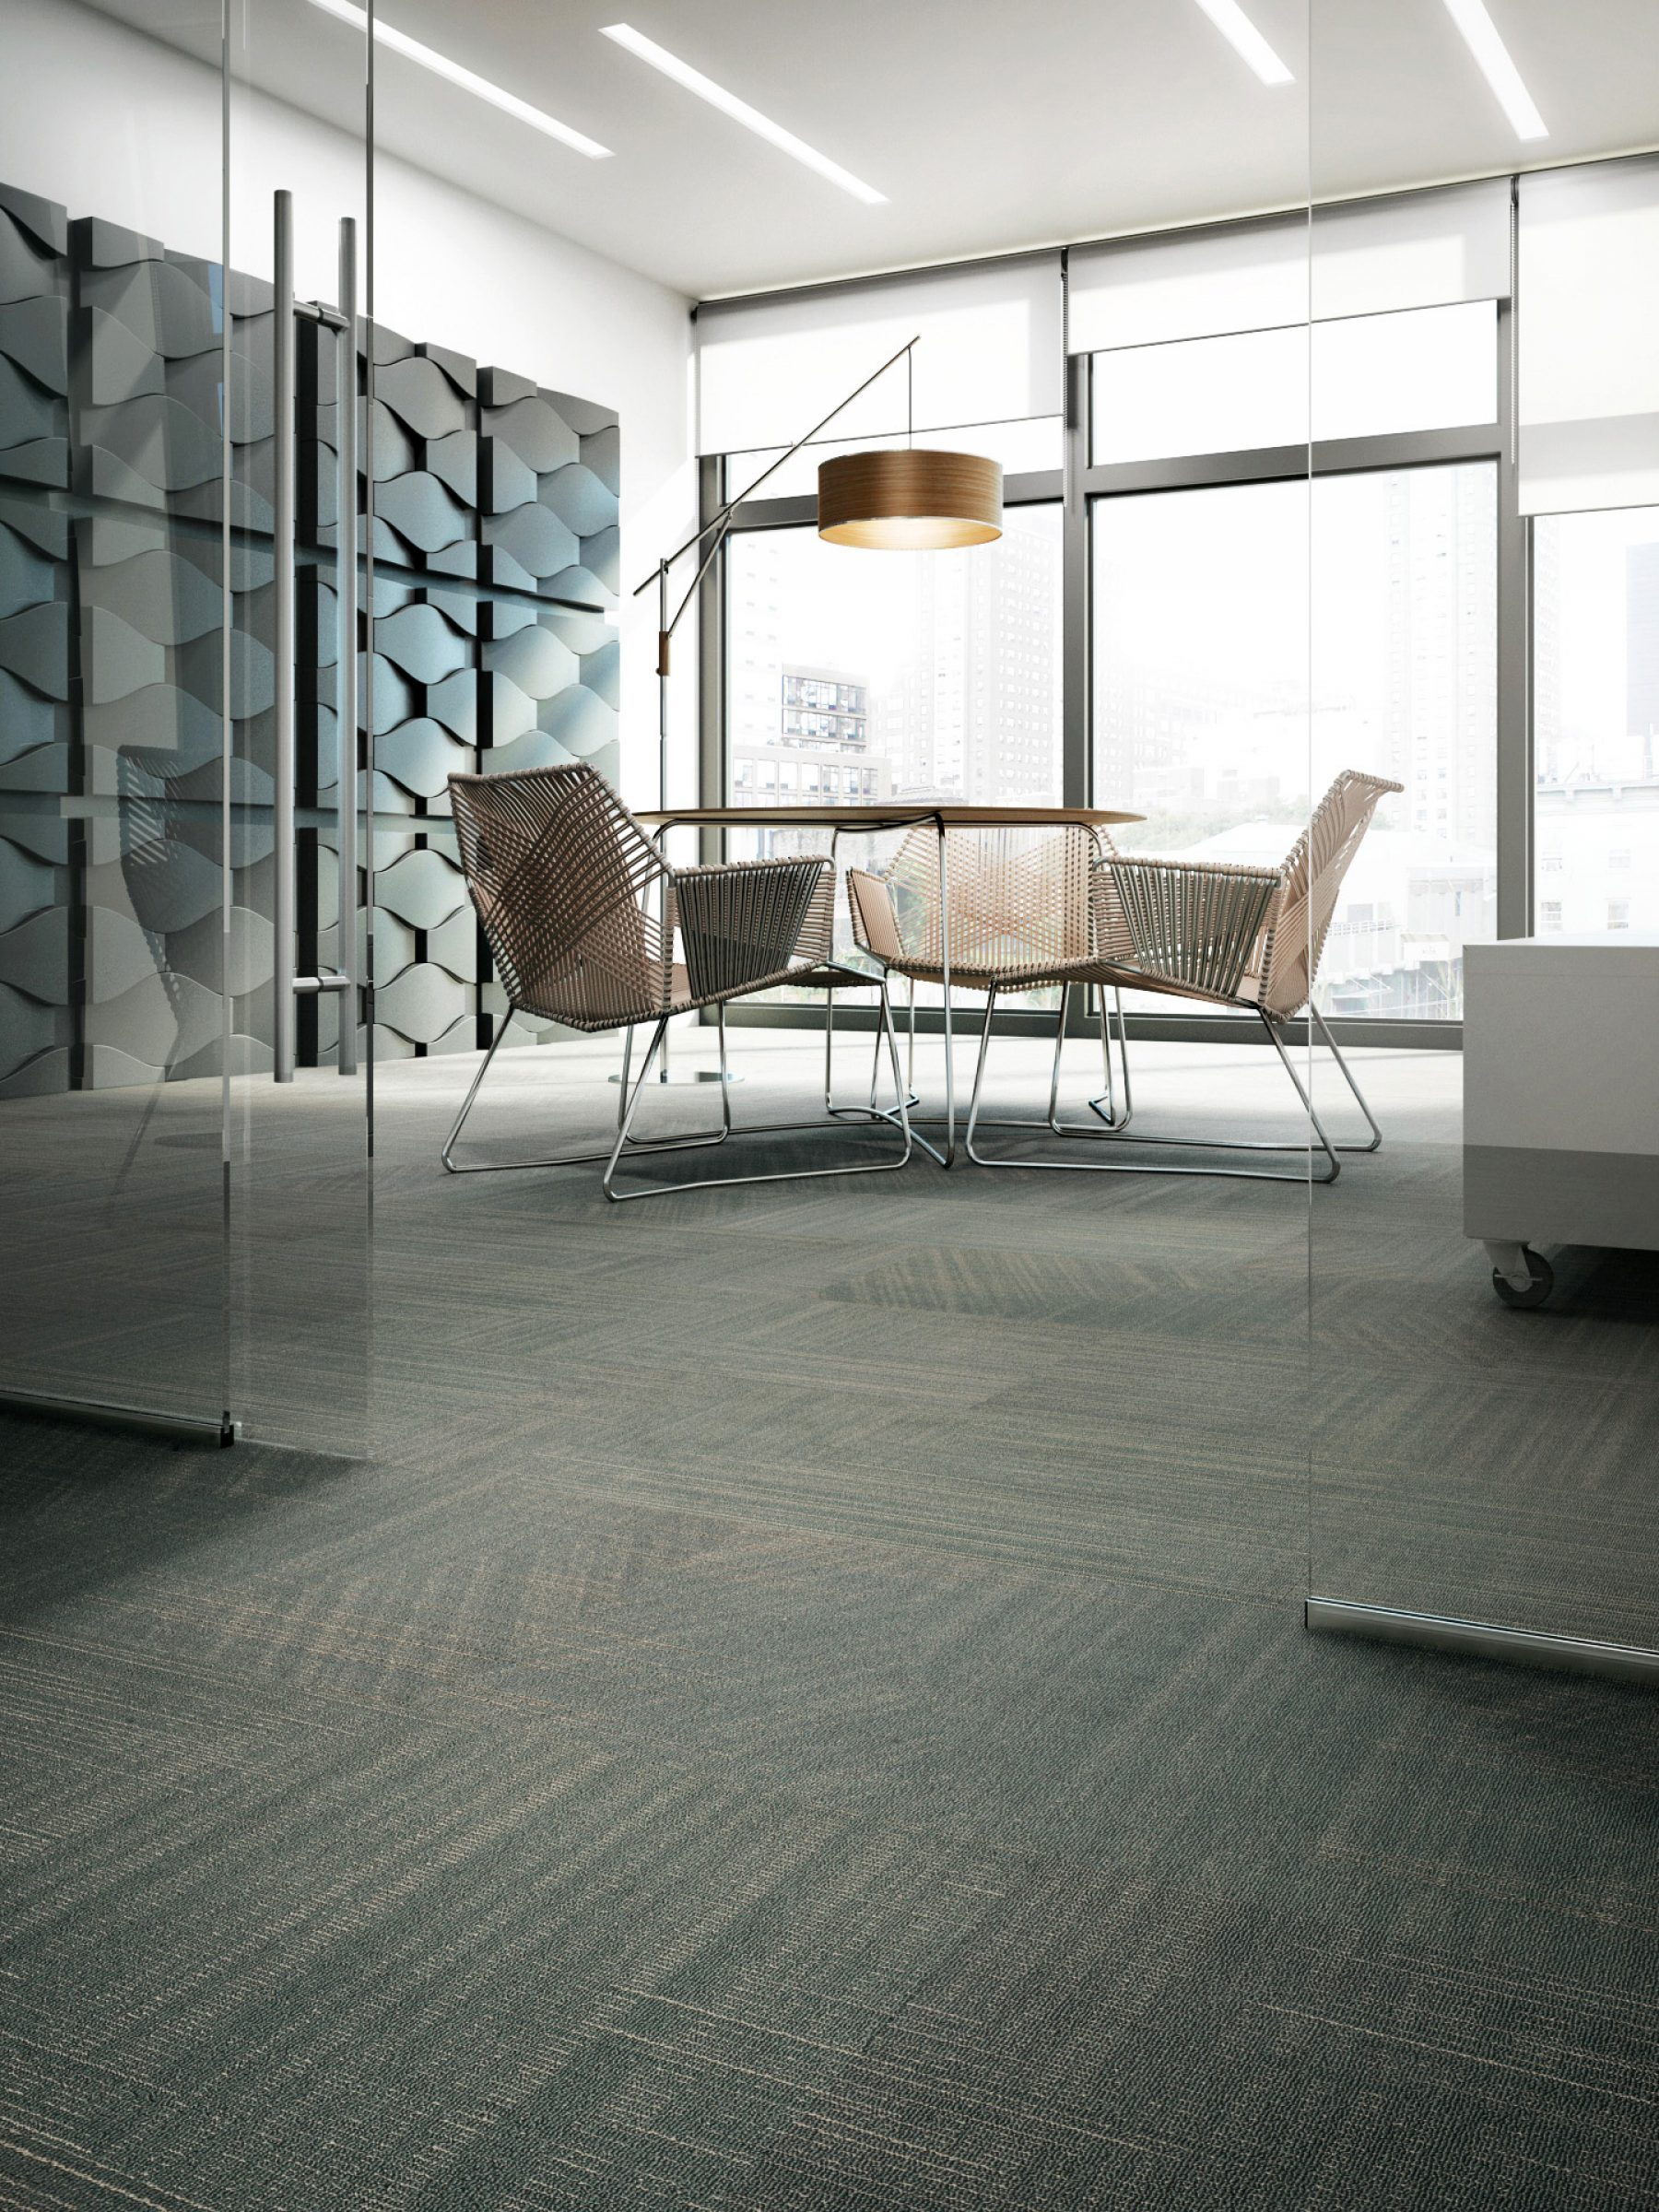 product-rendering-meeting-room-flooring